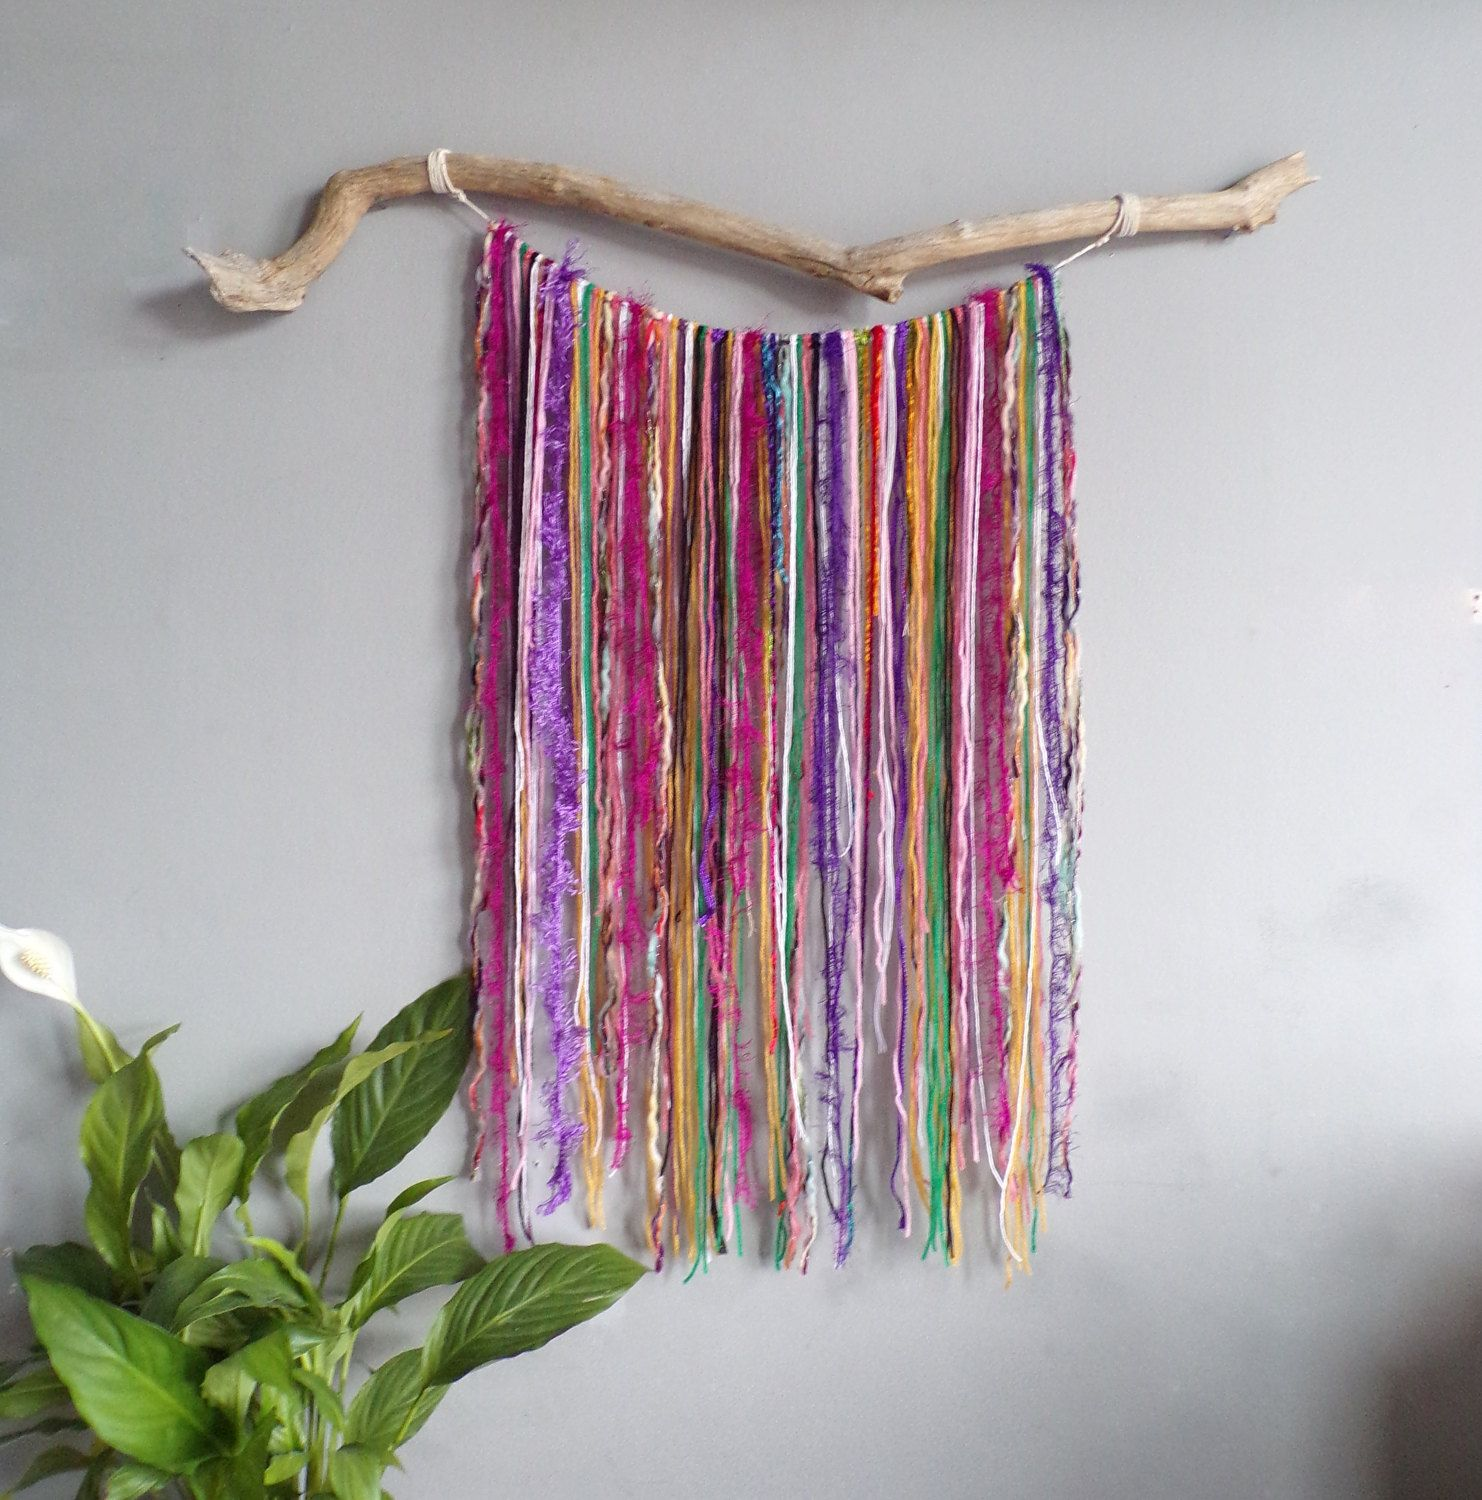 Wall Decorations Boho : Large yarn wall hanging decor boho art bohemian